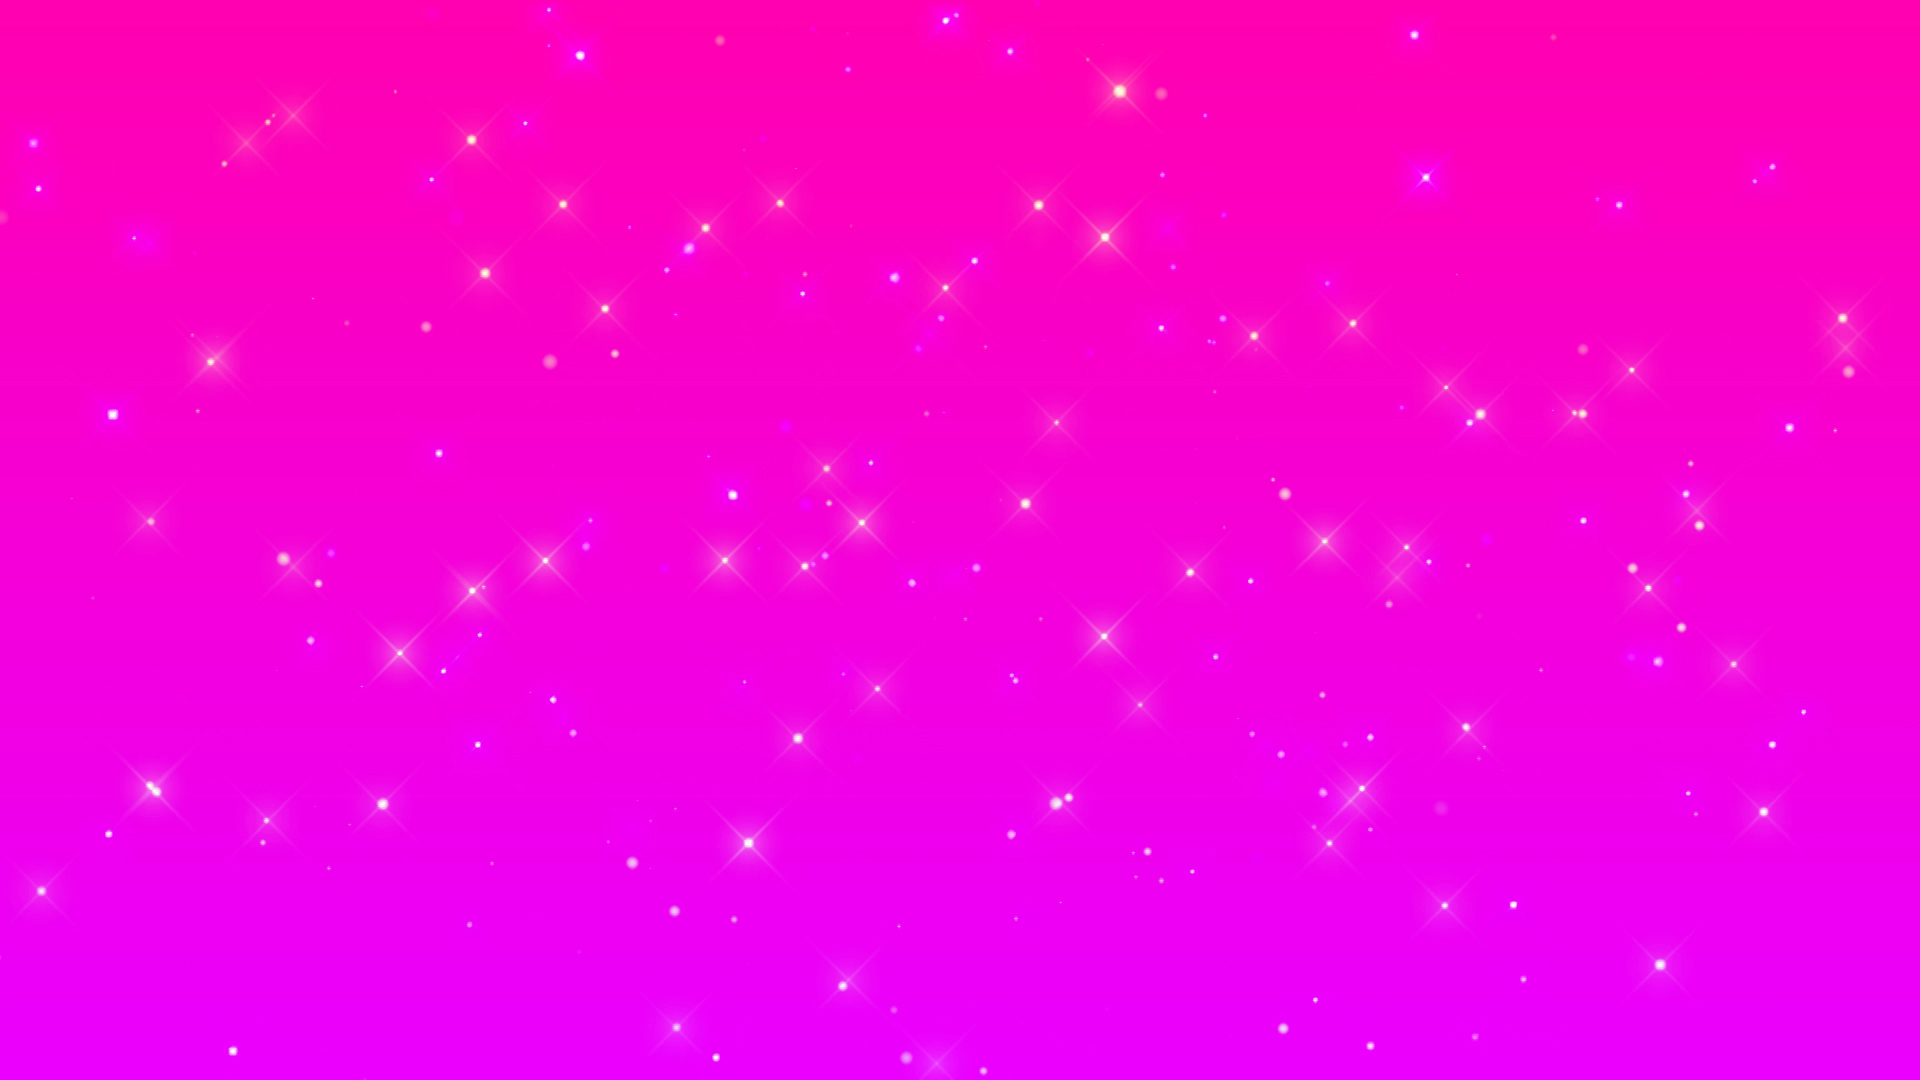 Abstract Backgrounds Pink Overhead Productions 1920x1080